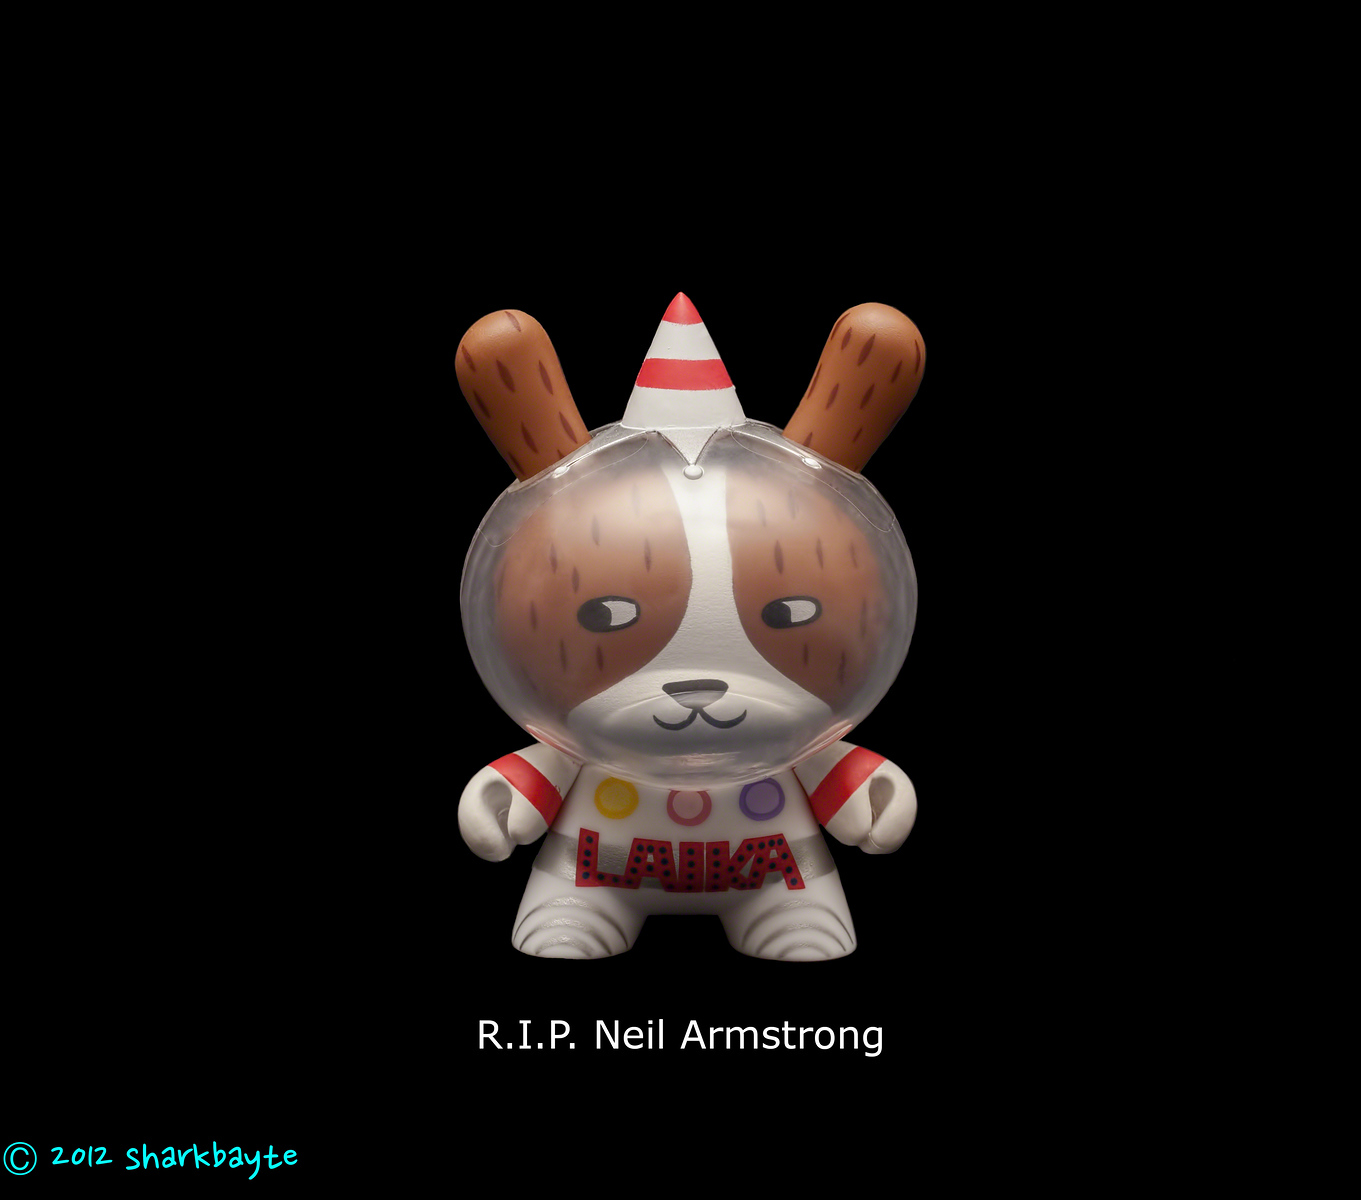 R.I.P.- Neil Armstrong R.I.P. Neil Armstrong. Thanks for everything. And to Laika the first dog in space, who sadly died in orbit, but gave us valuable information that paved the way for humans to walk on the moon and hopefully beyond. (August 26, 2012)